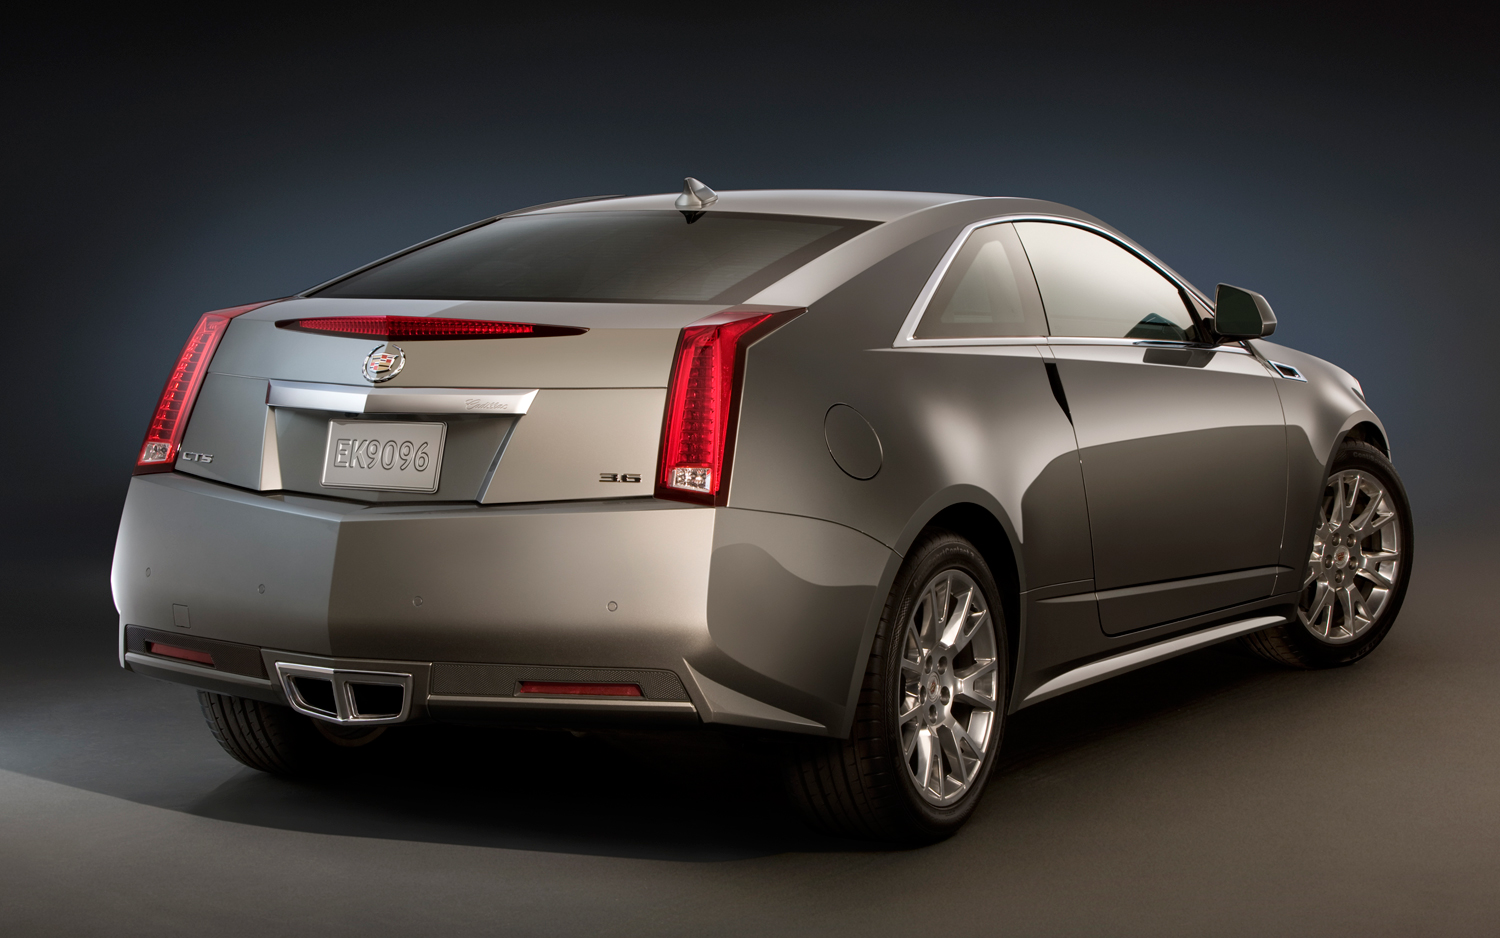 2012 Cadillac Cts Coupe #20